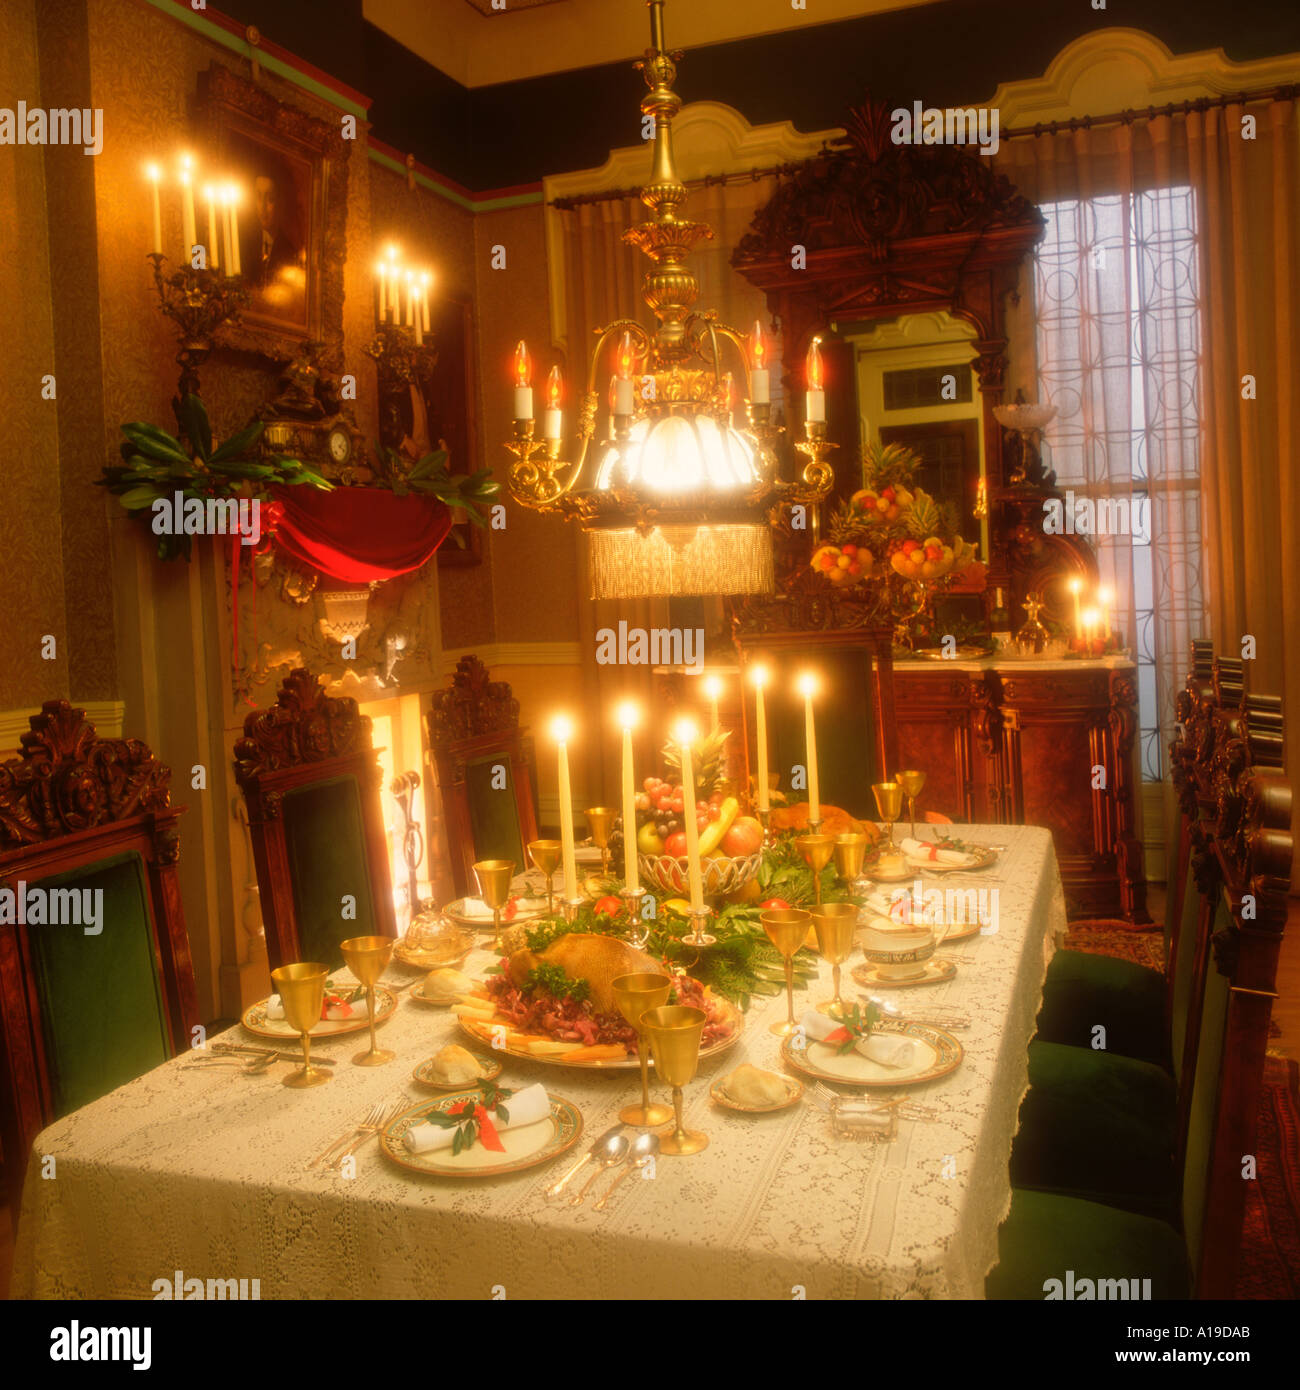 Victorian Christmas Dinner Table Setting Stock Photo